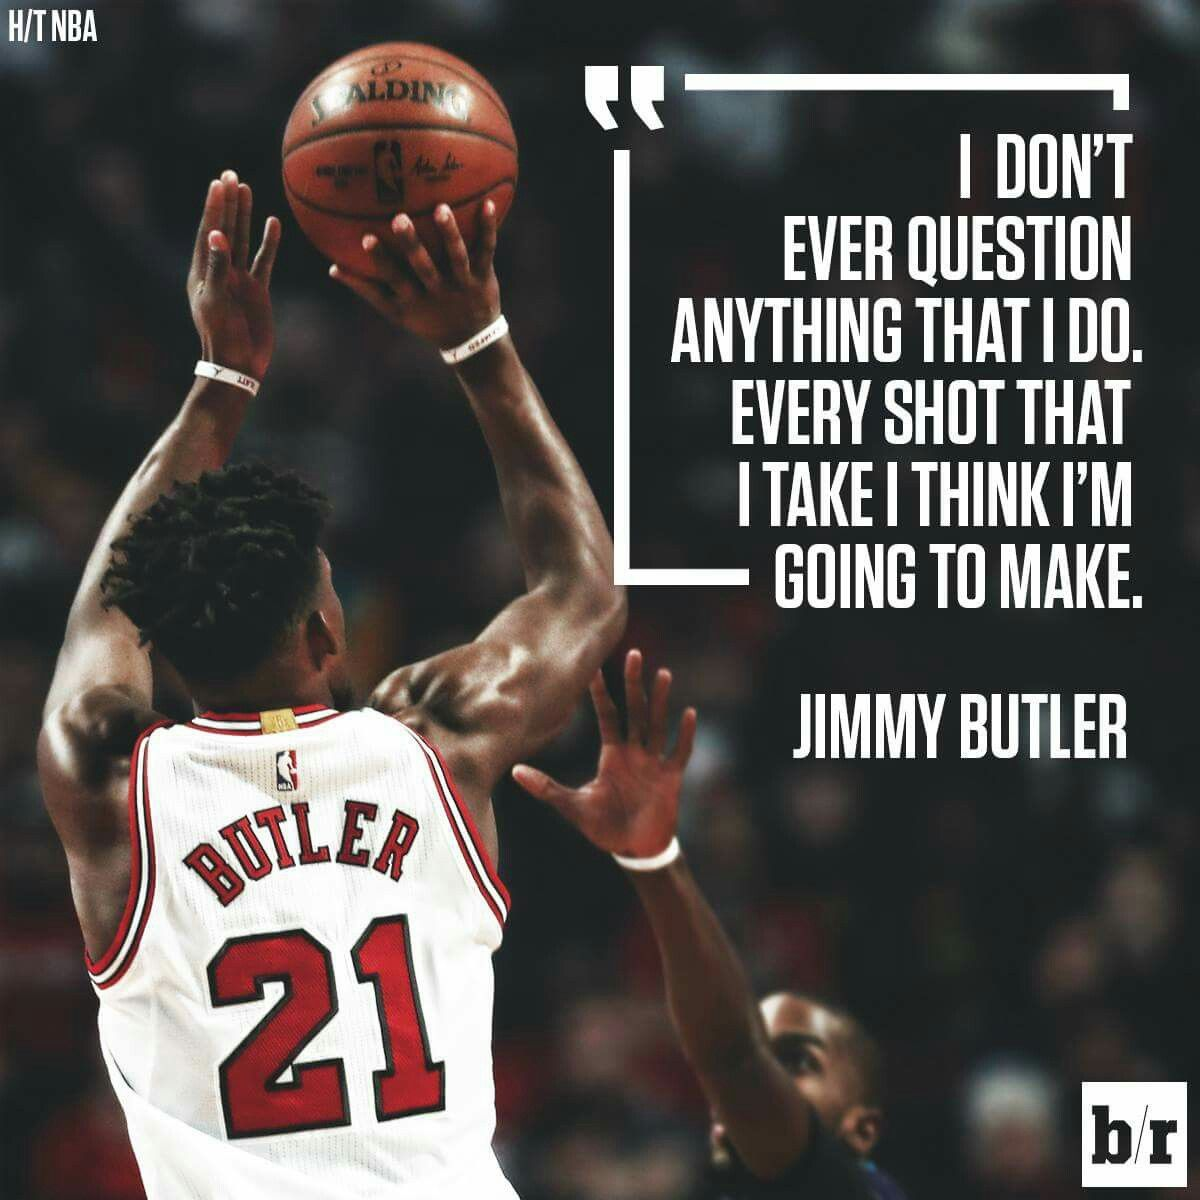 Bulls guard Jimmy Butler on his current statistical hot